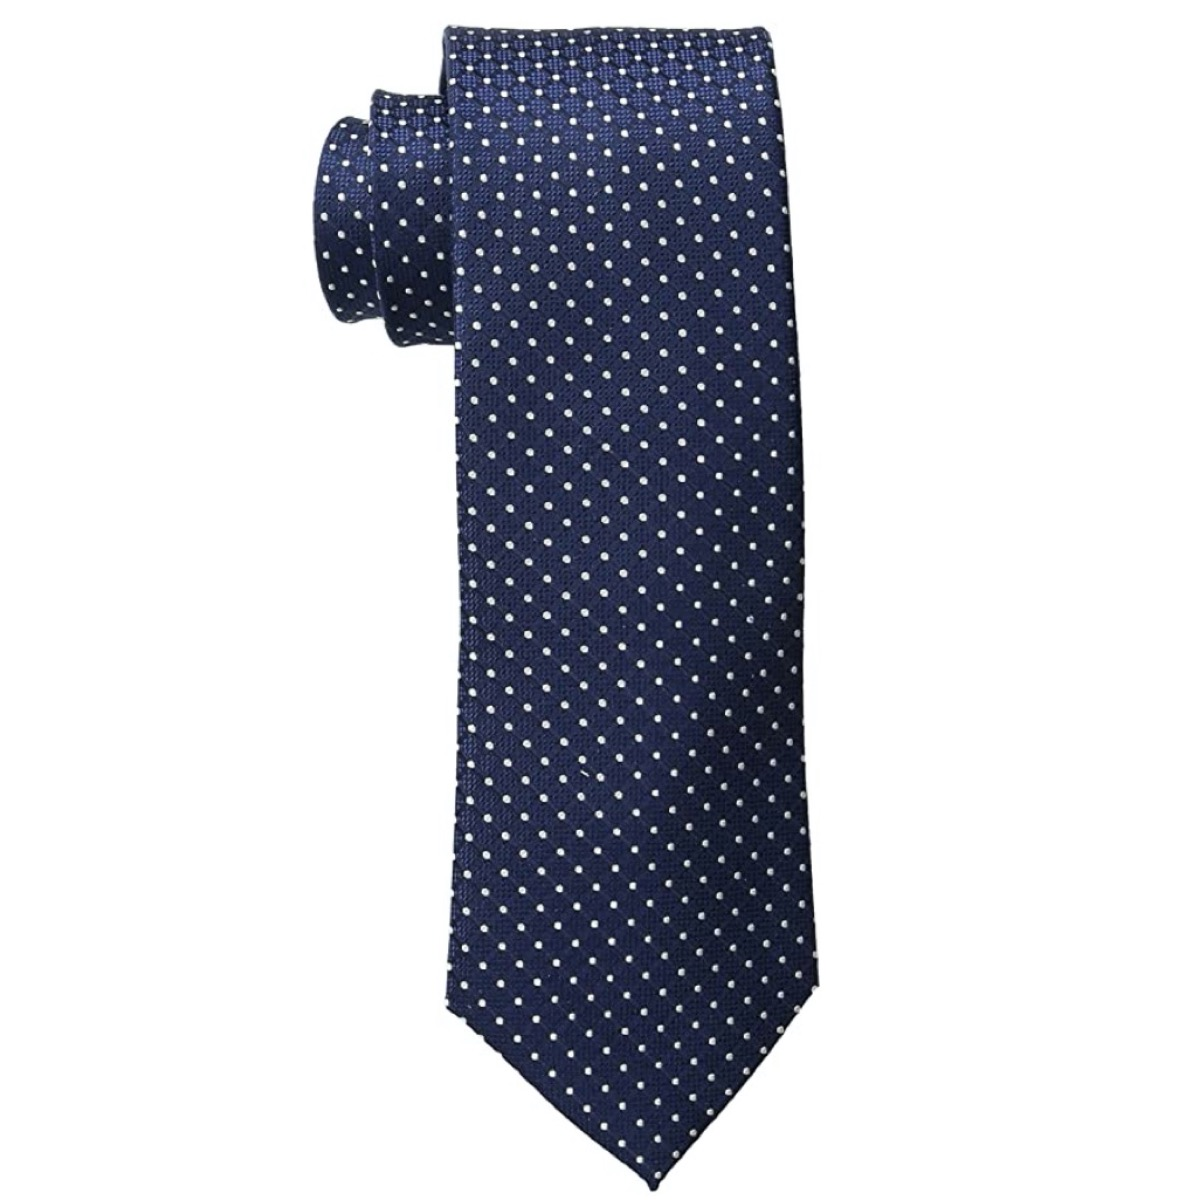 blue tie with white polka dots